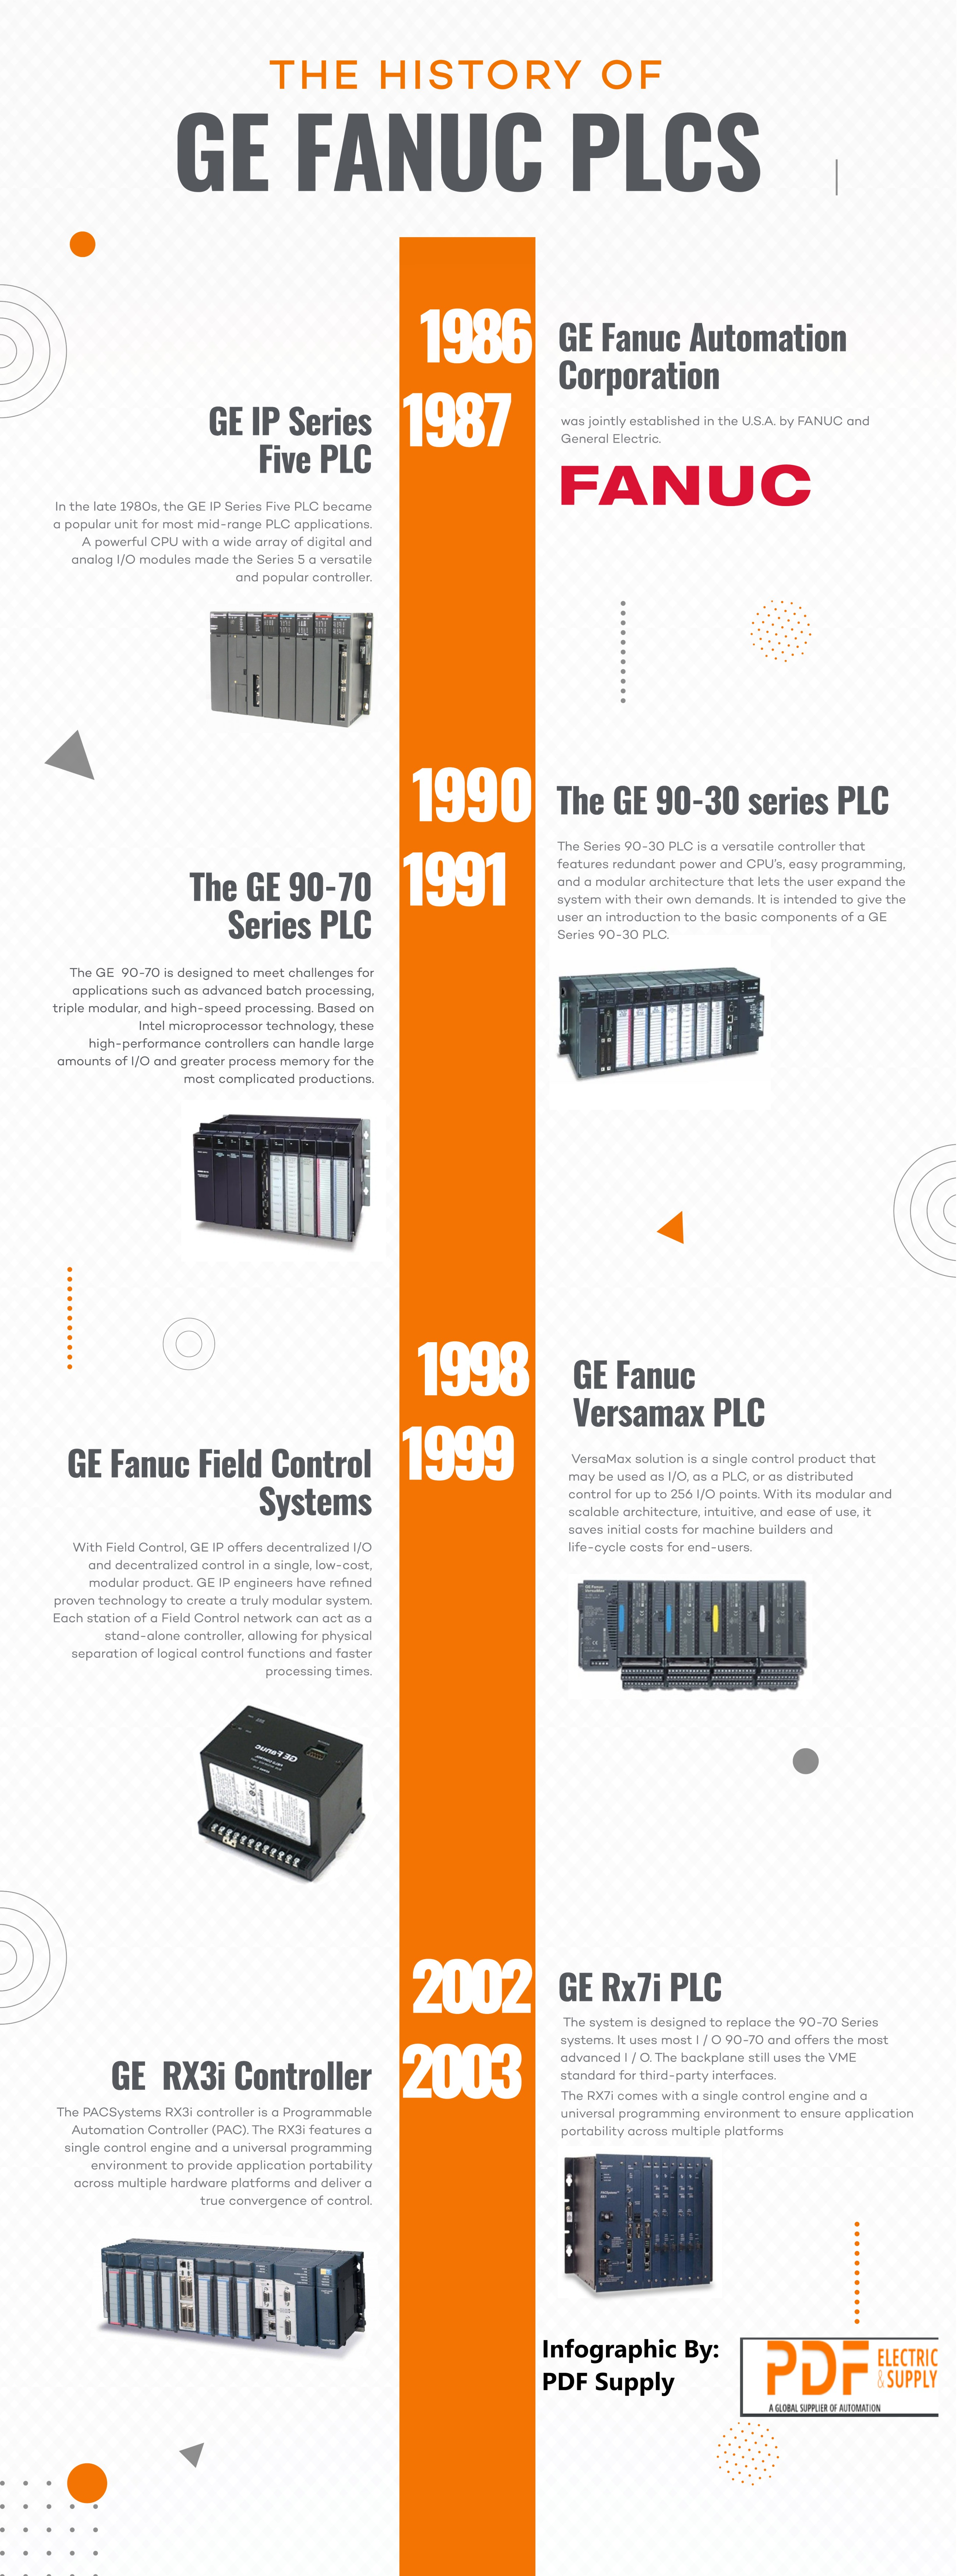 Infographic: The History of GE Fanuc PLCs